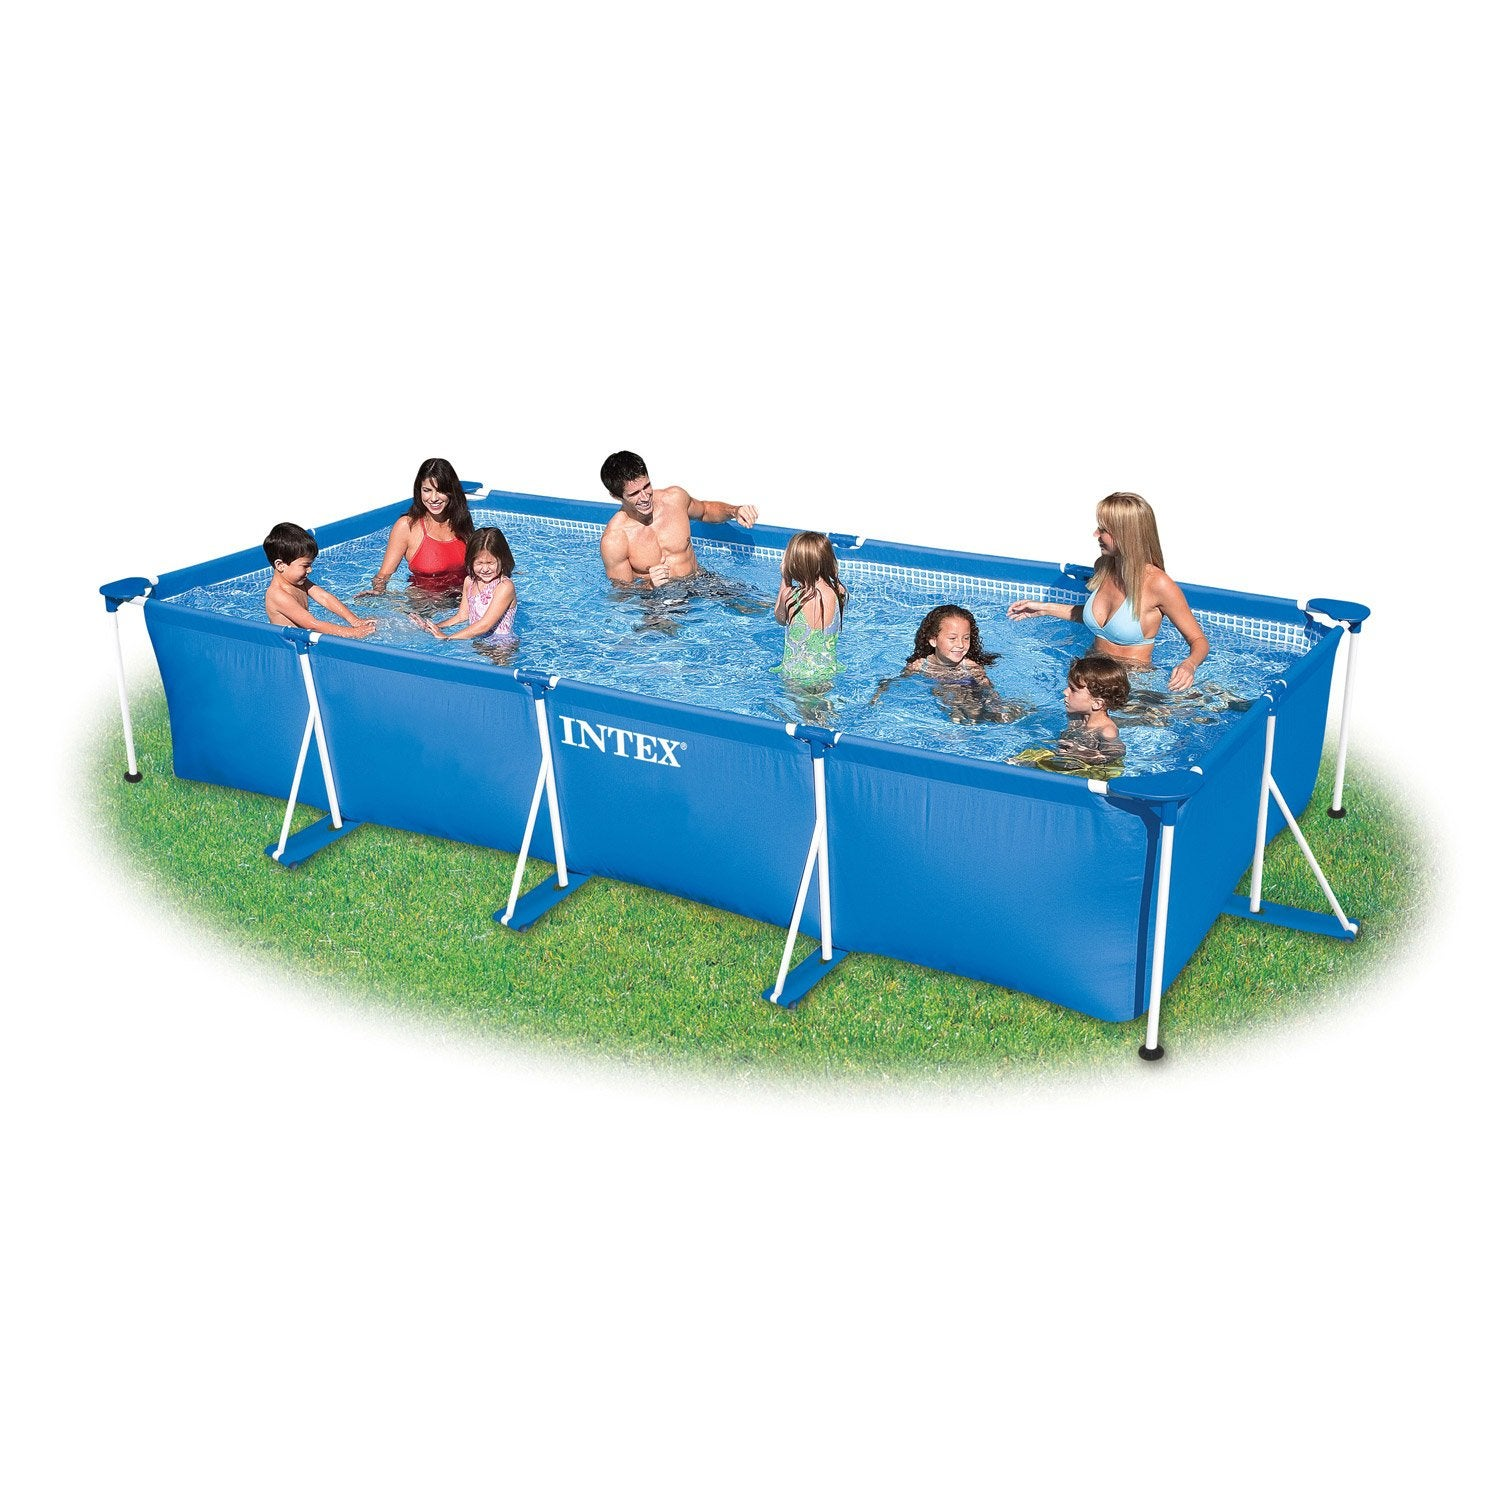 Piscine hors sol autoportante tubulaire intex l x l for Piscine hors sol declaration